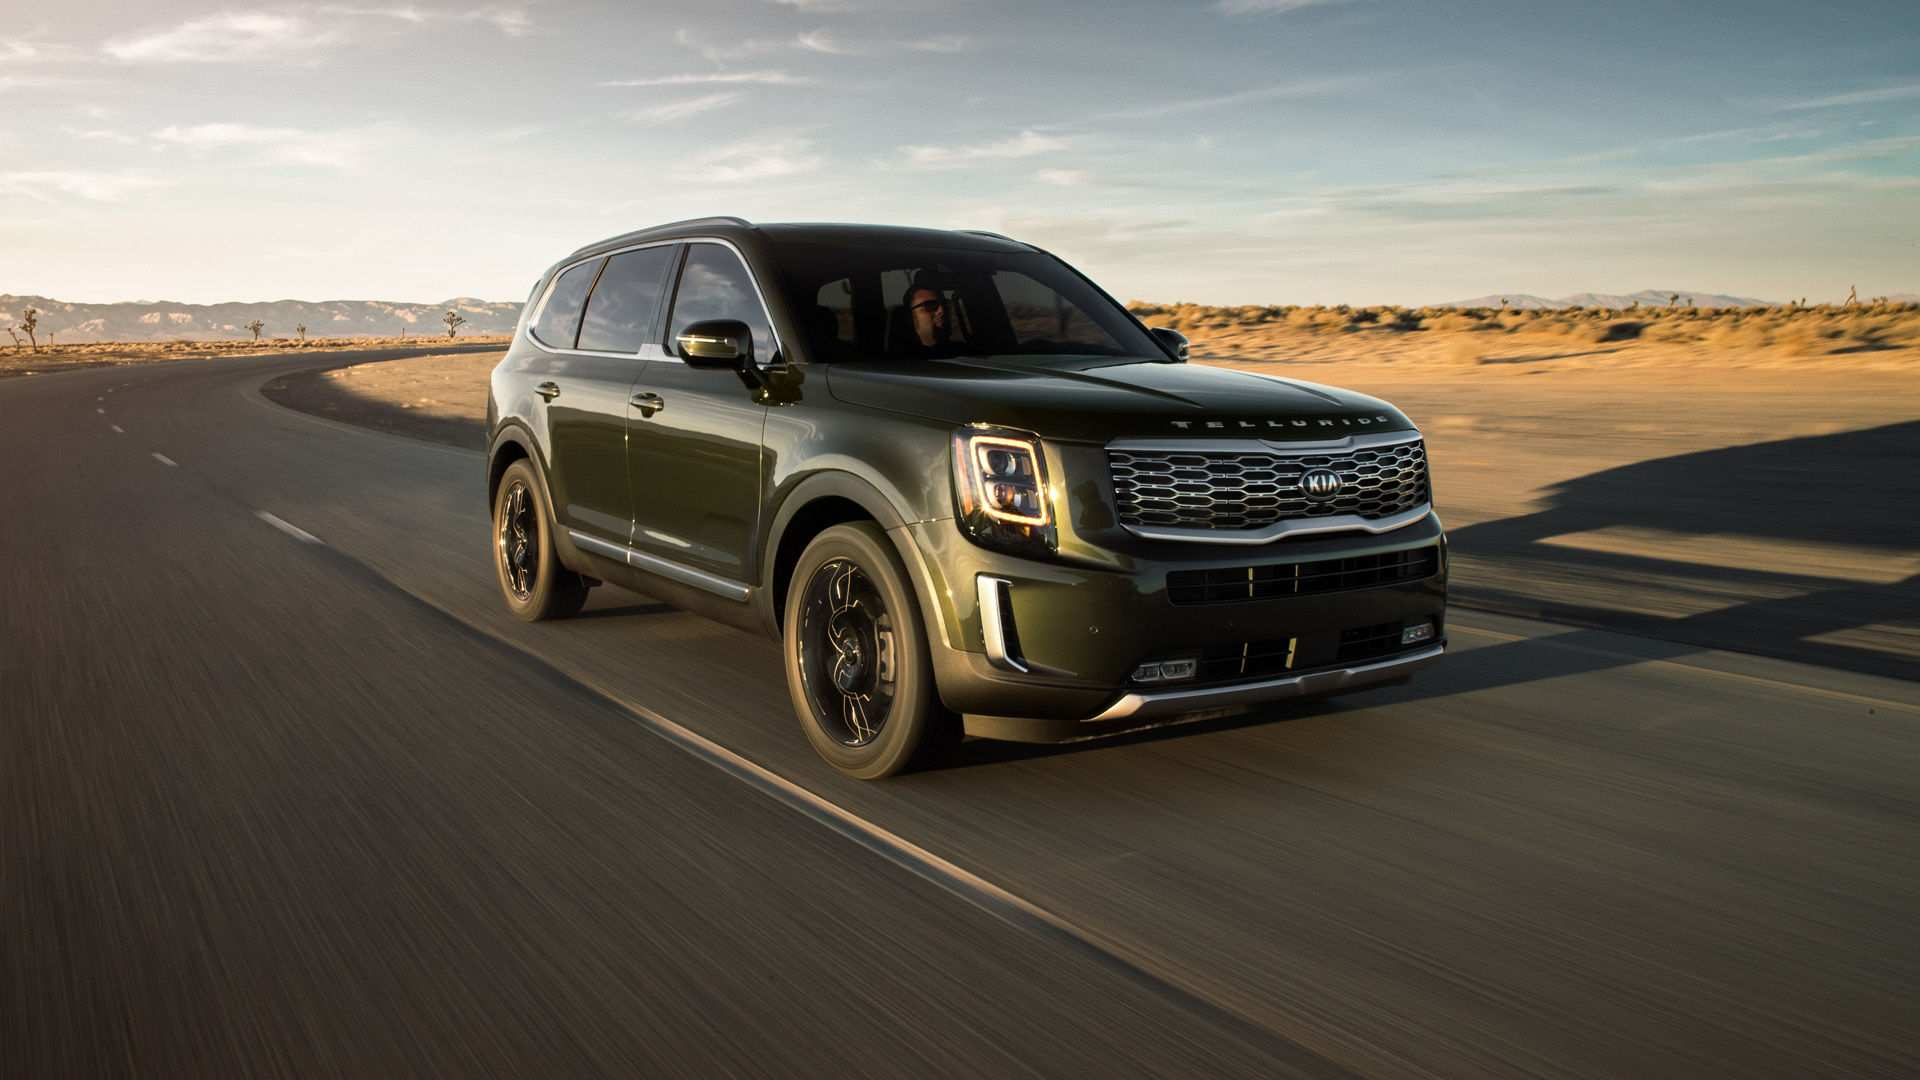 26 Concept of 2020 Kia Telluride Australia Spy Shoot with 2020 Kia Telluride Australia